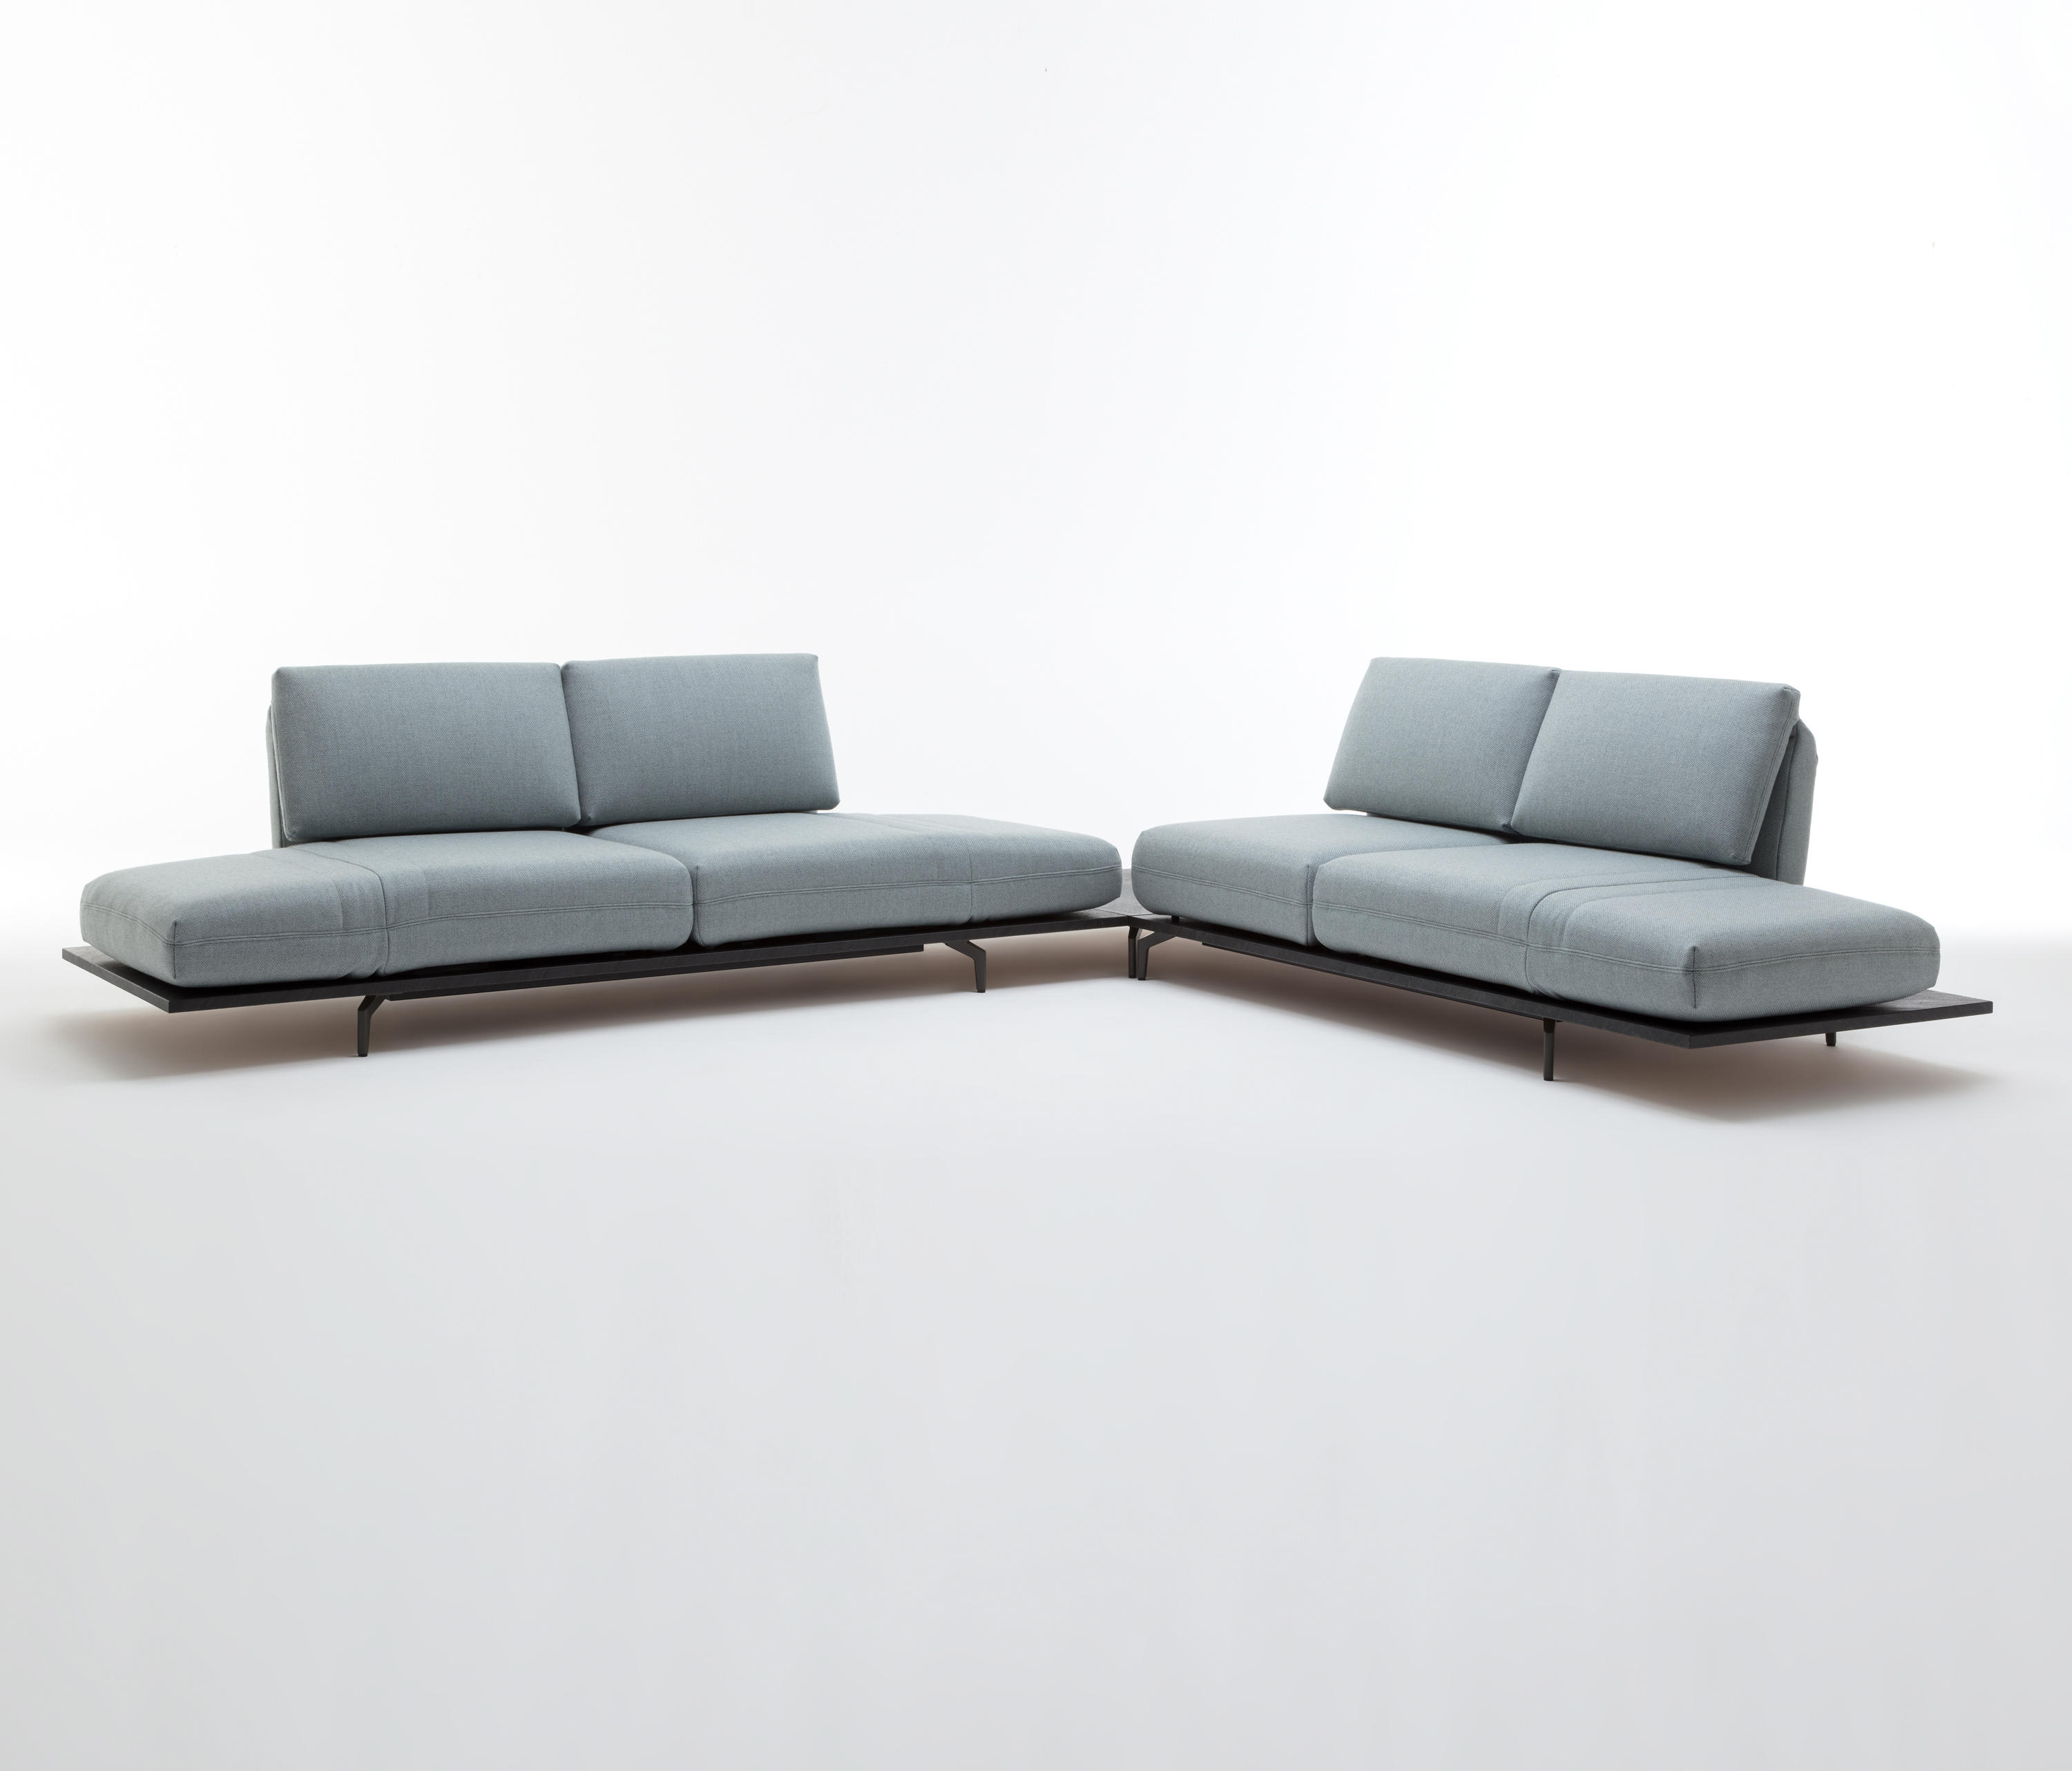 Benz Corner Sofa Sofa Rolf Benz Gallery Of Download D Sofa With Sofa Rolf